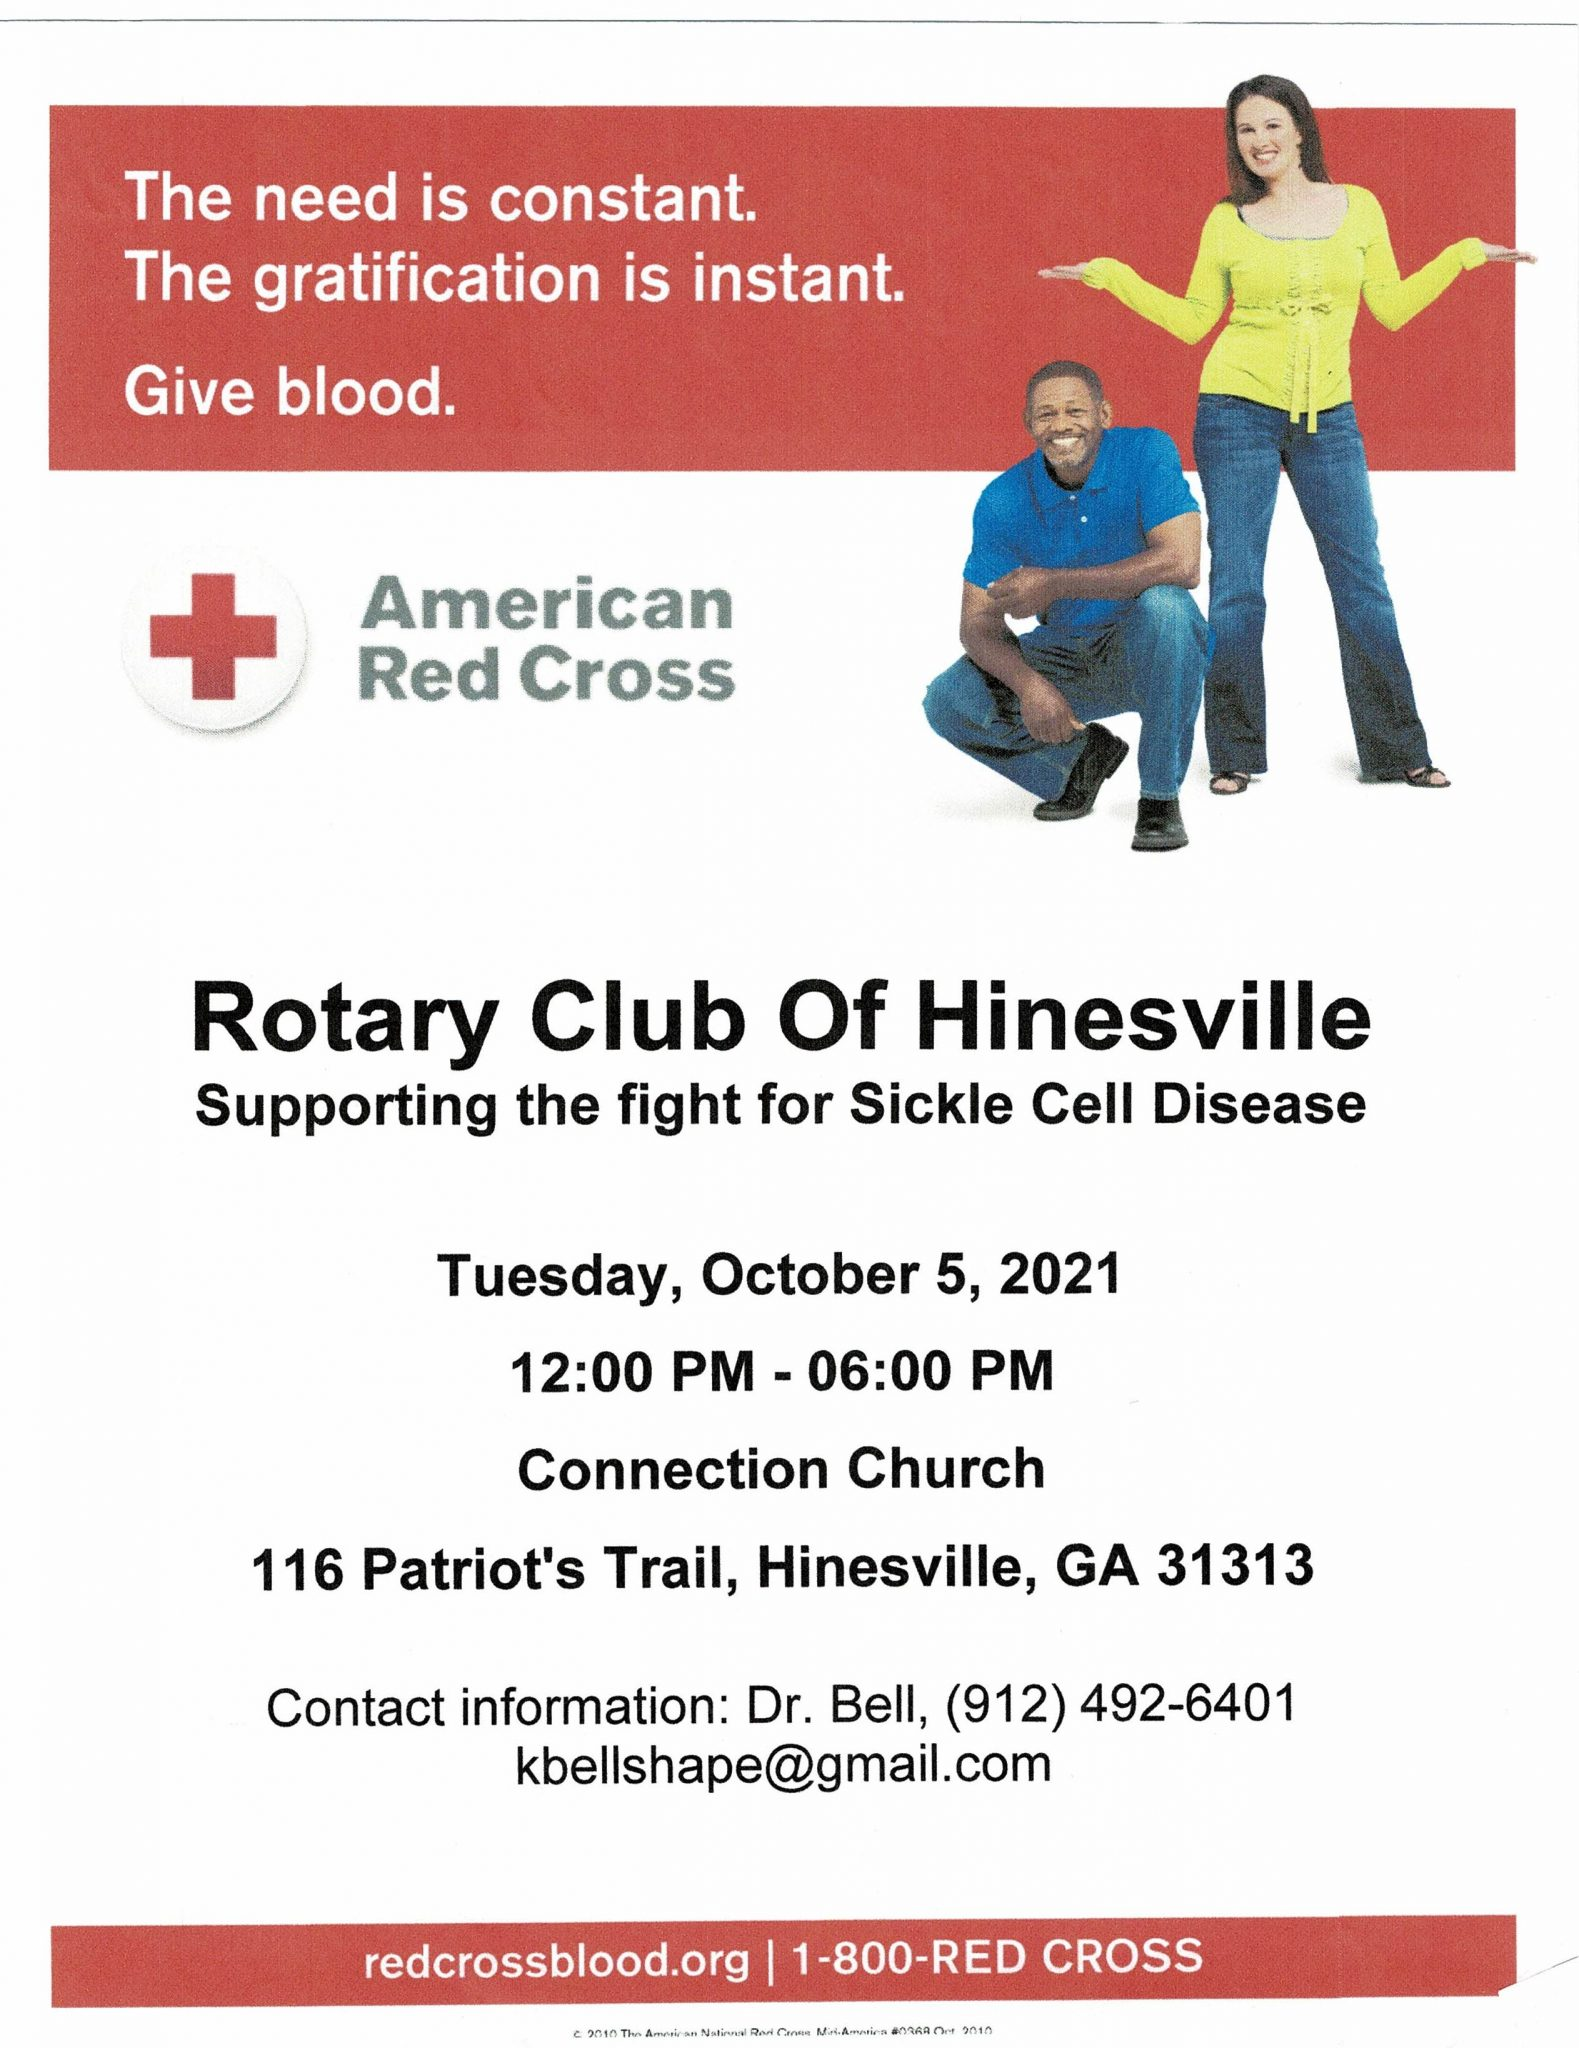 Rotary Club of Hinesville Blood Drive